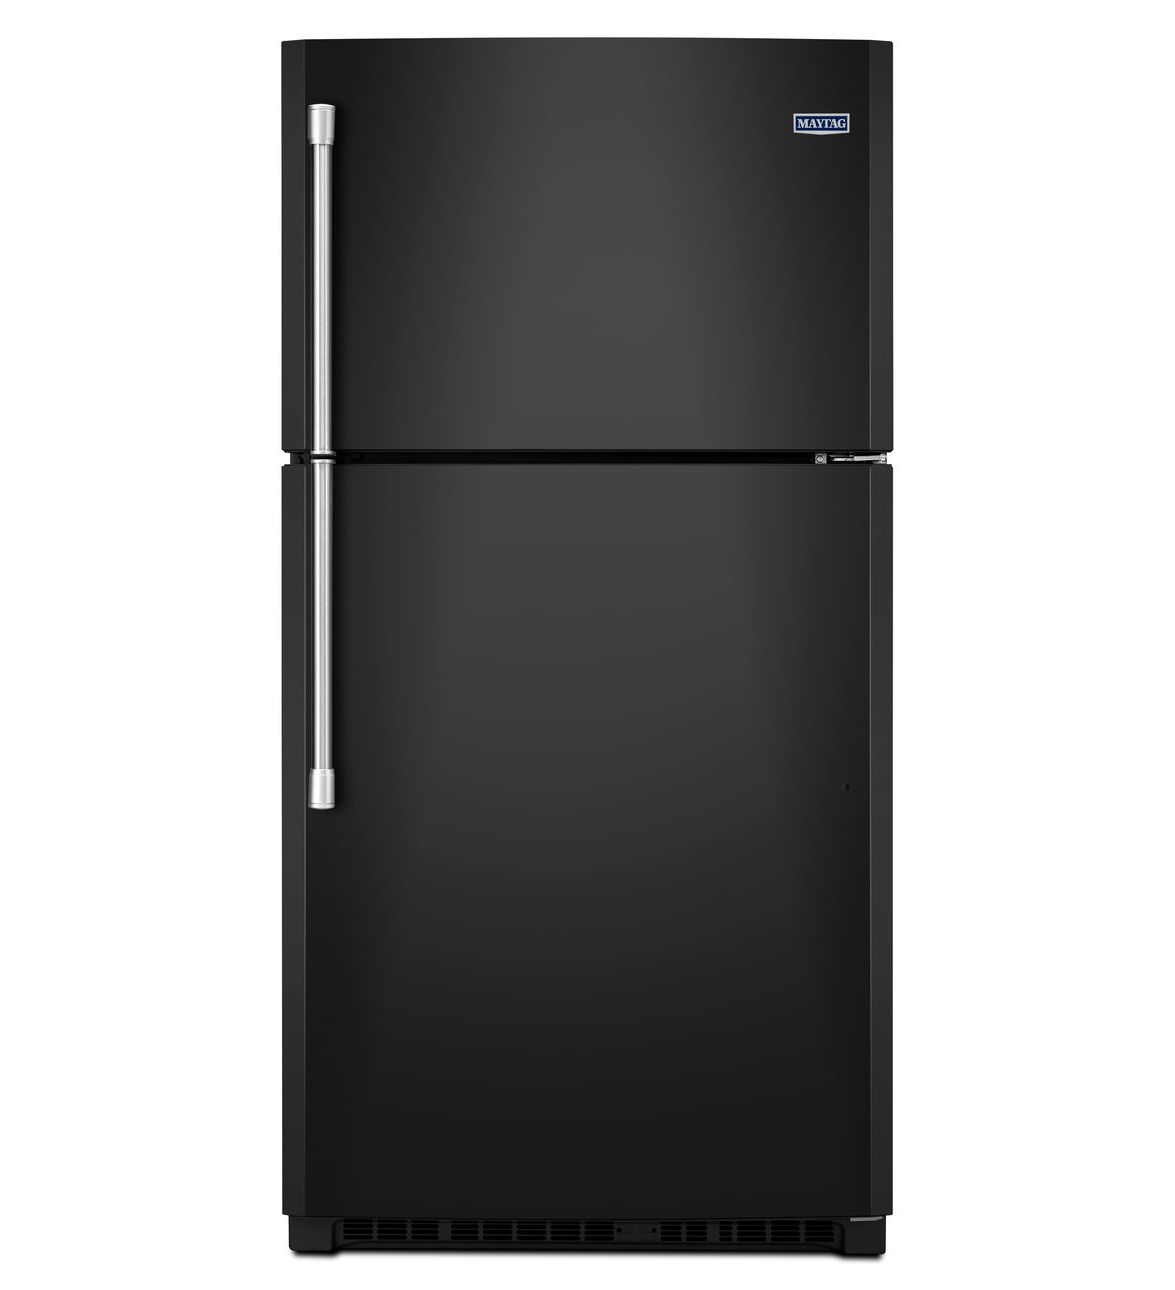 Maytag french door refrigerator reviews - Maytag Fridge Review